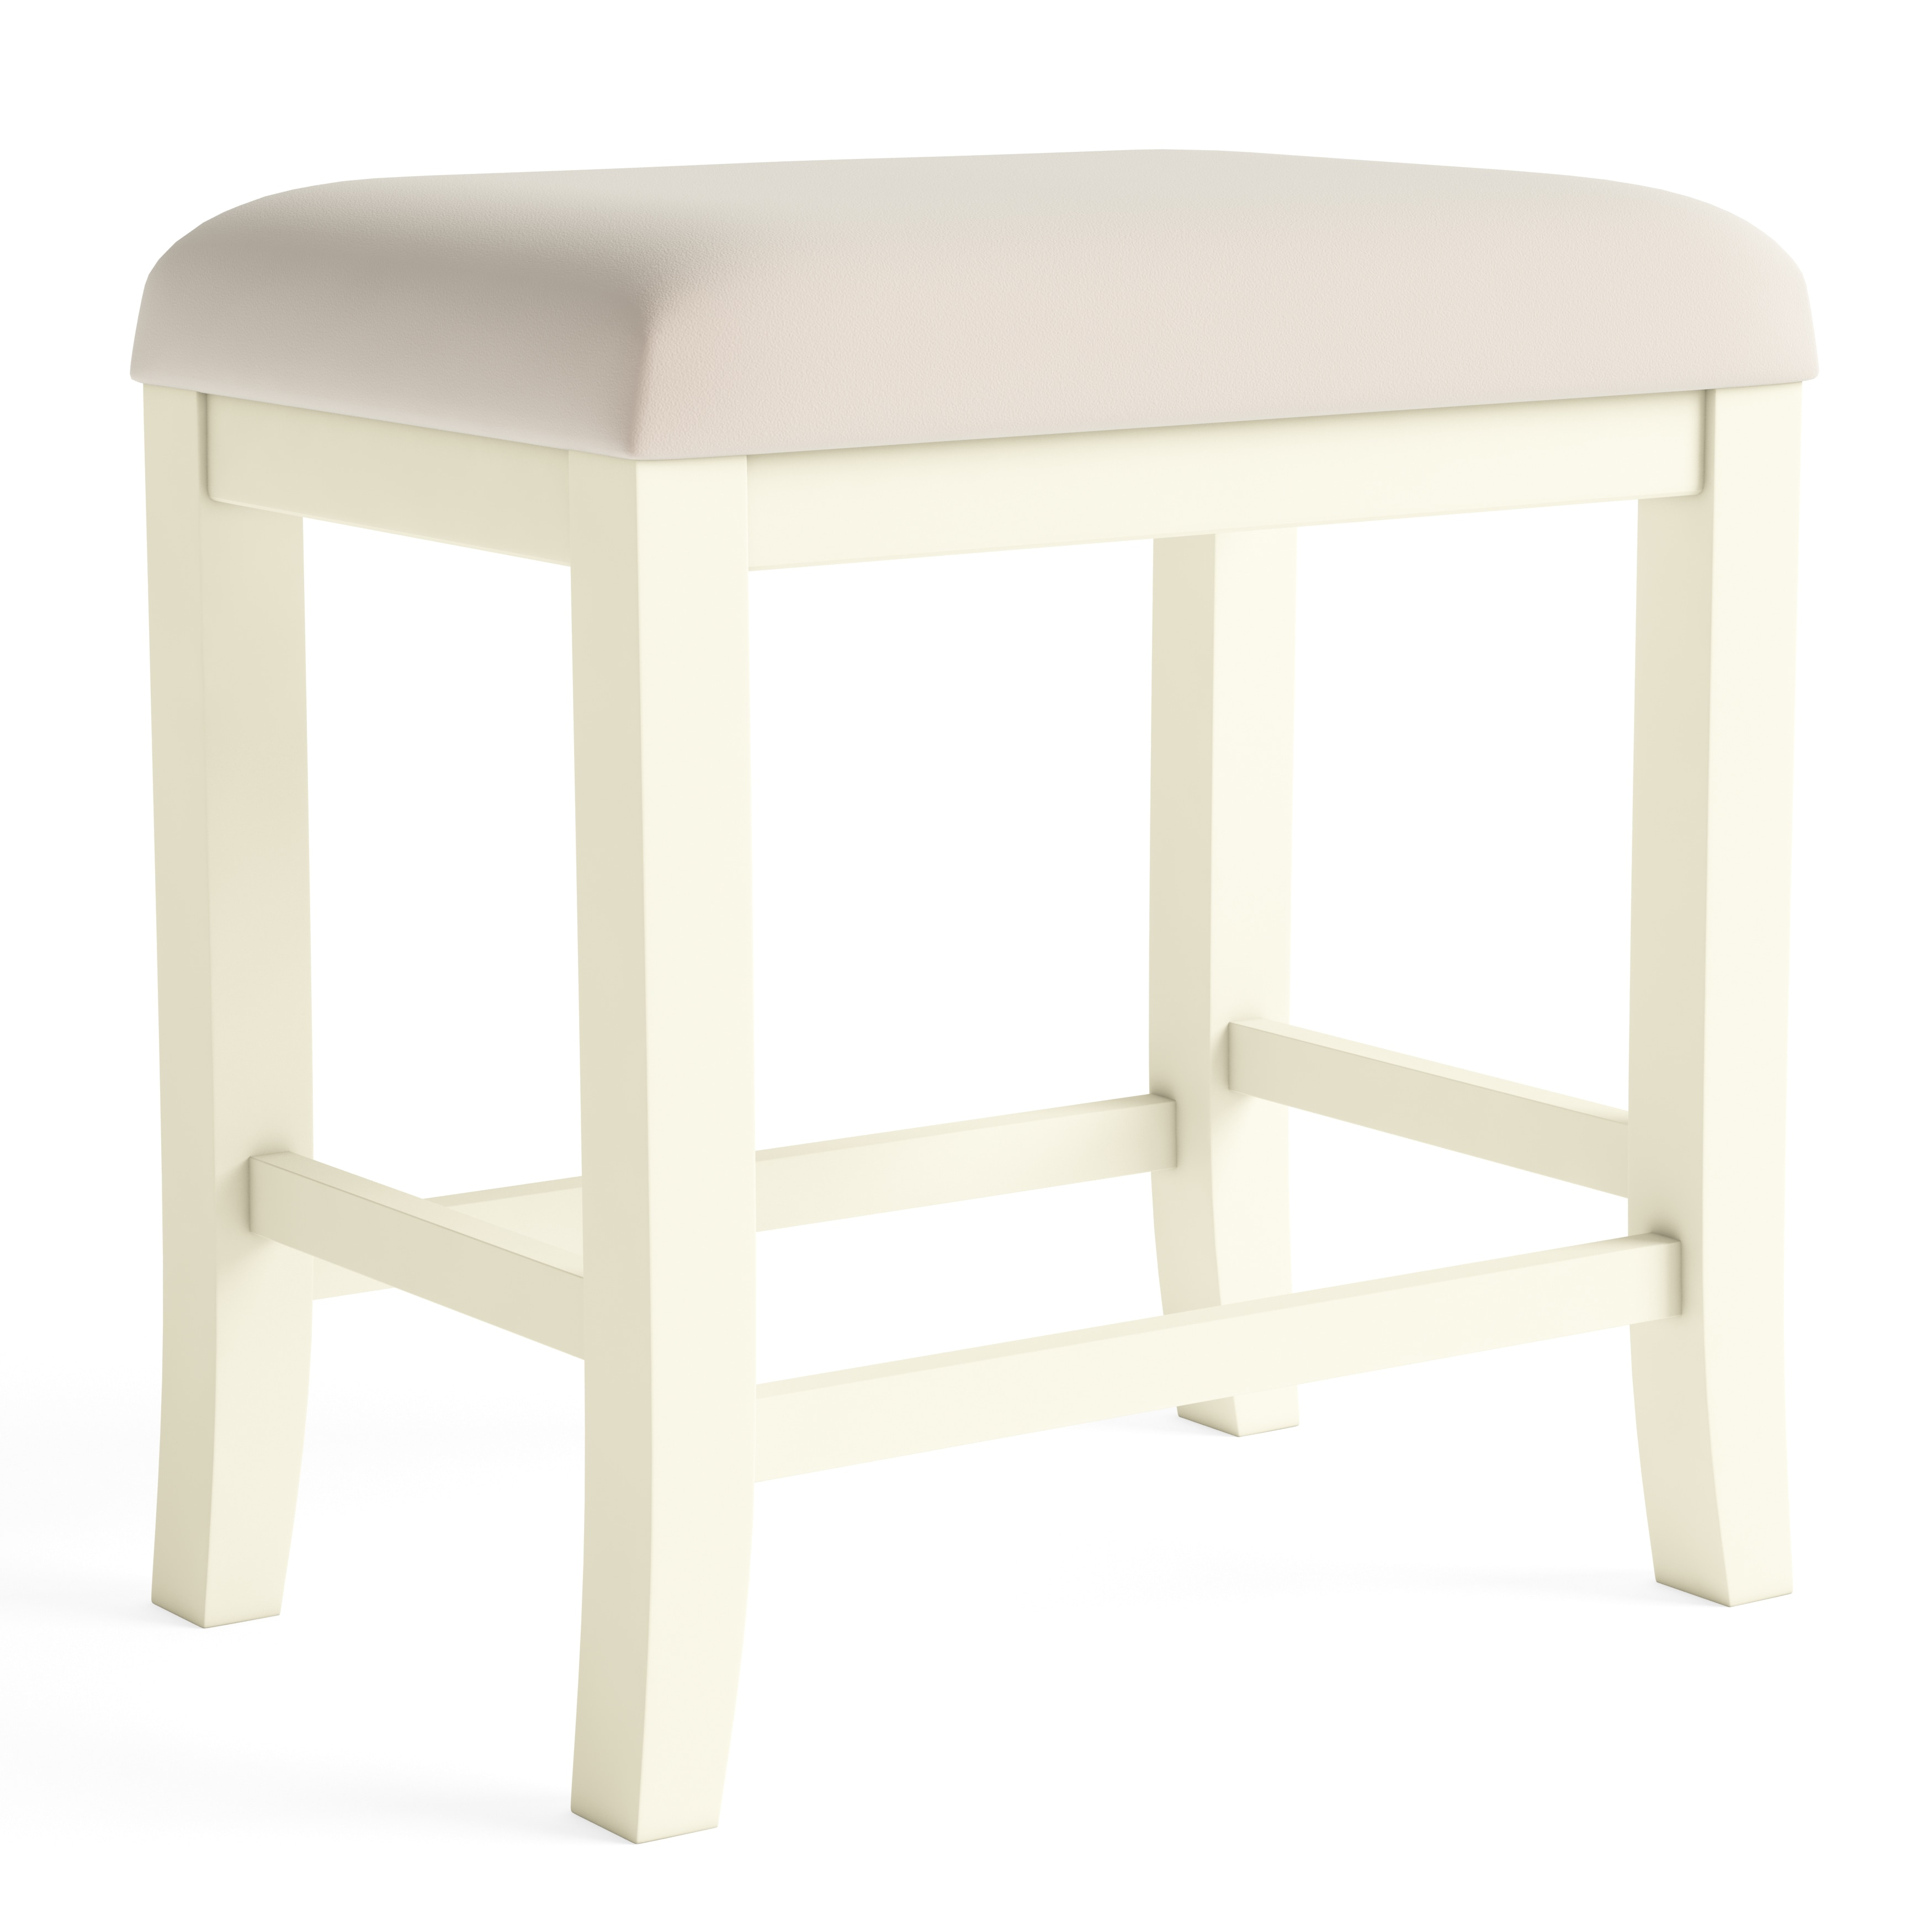 Shop Clay Alder Home Yukon Cream Vanity Table, Stool And Mirror   Free  Shipping Today   Overstock.com   20254817